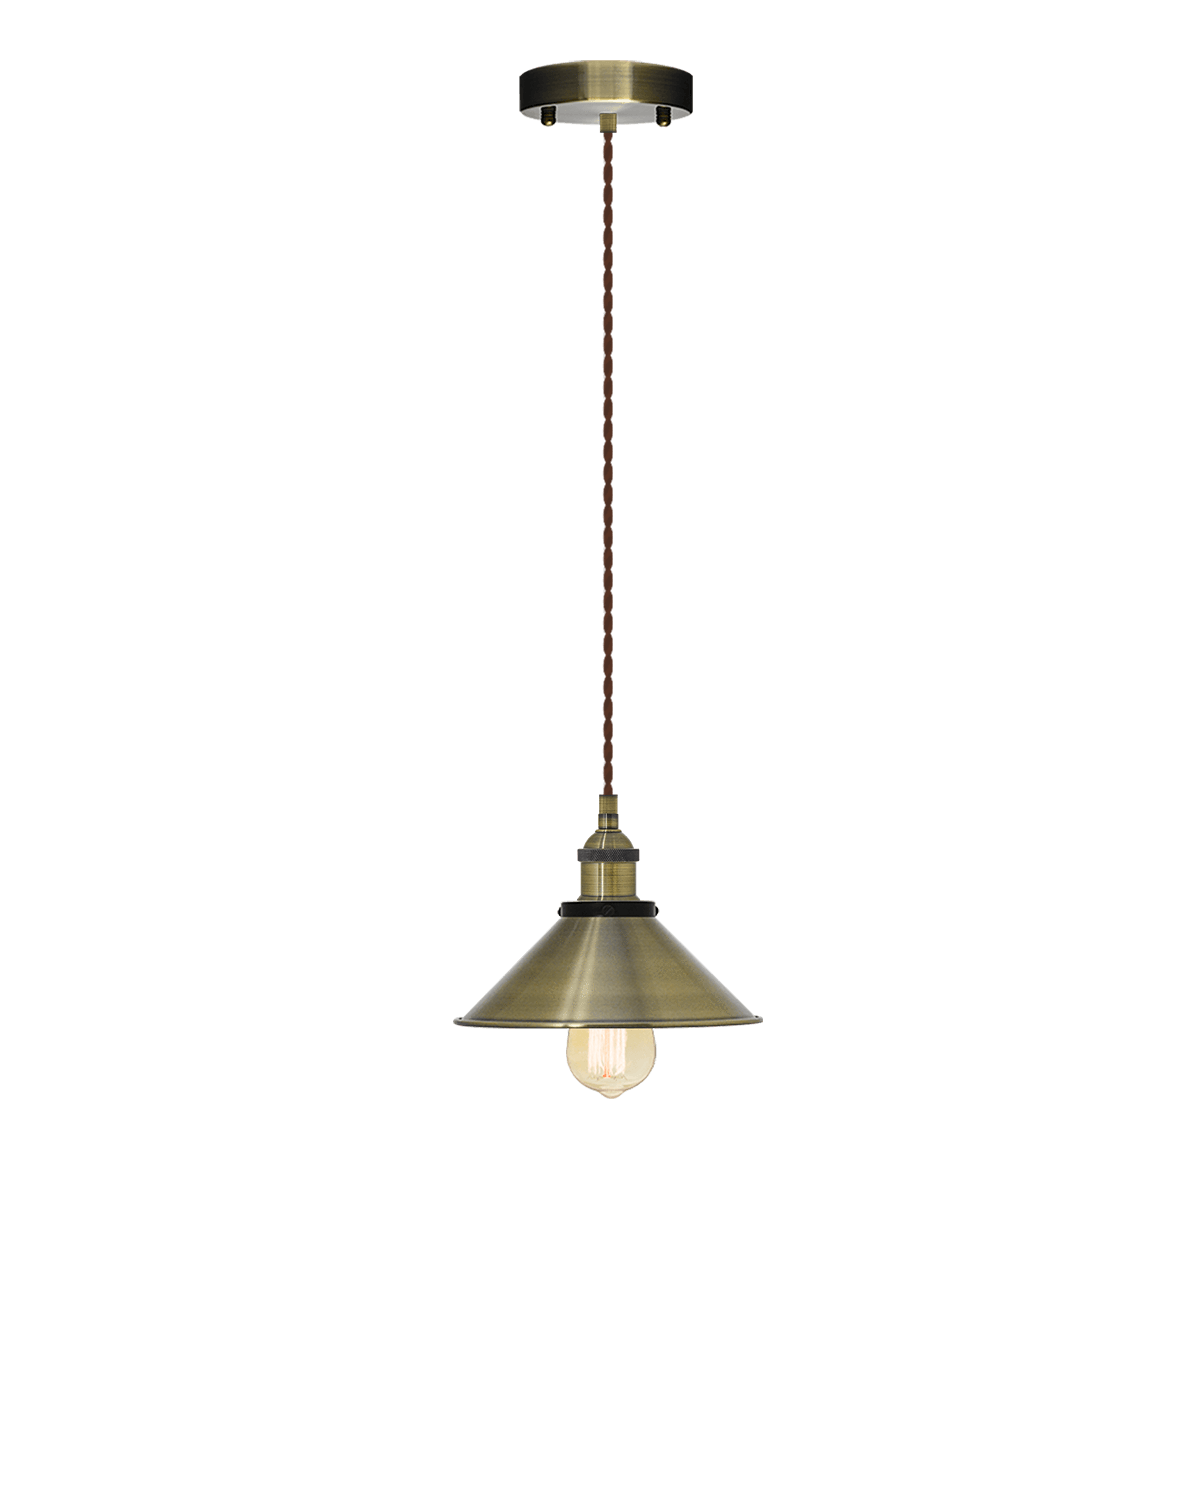 Single Pendant: Brown Twisted and Antique Shade Hangout Lighting